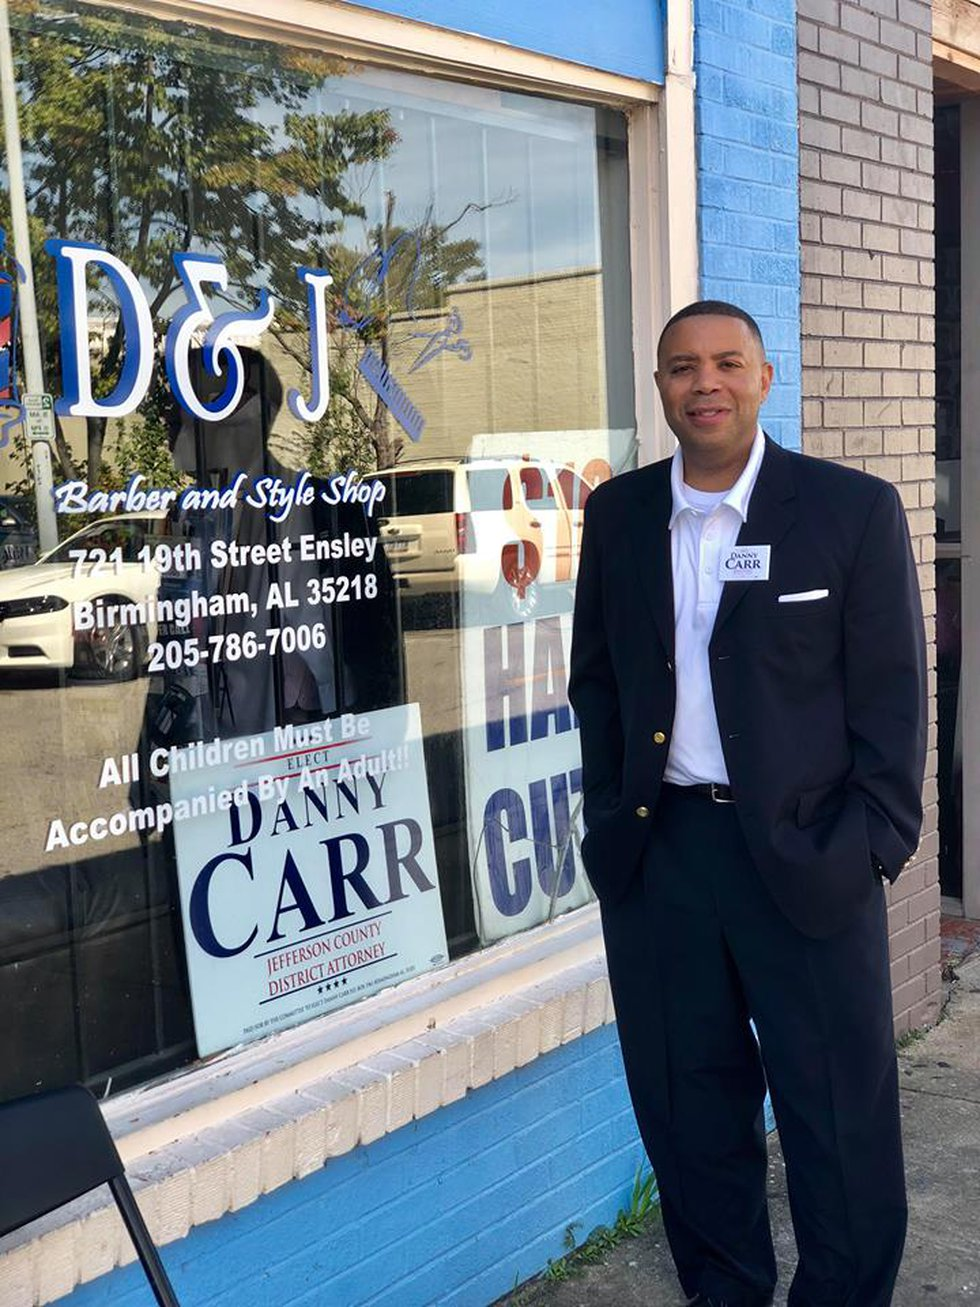 Danny Carr outside D & J Barber Shop in Ensley, named for him and his brother, who was killed.